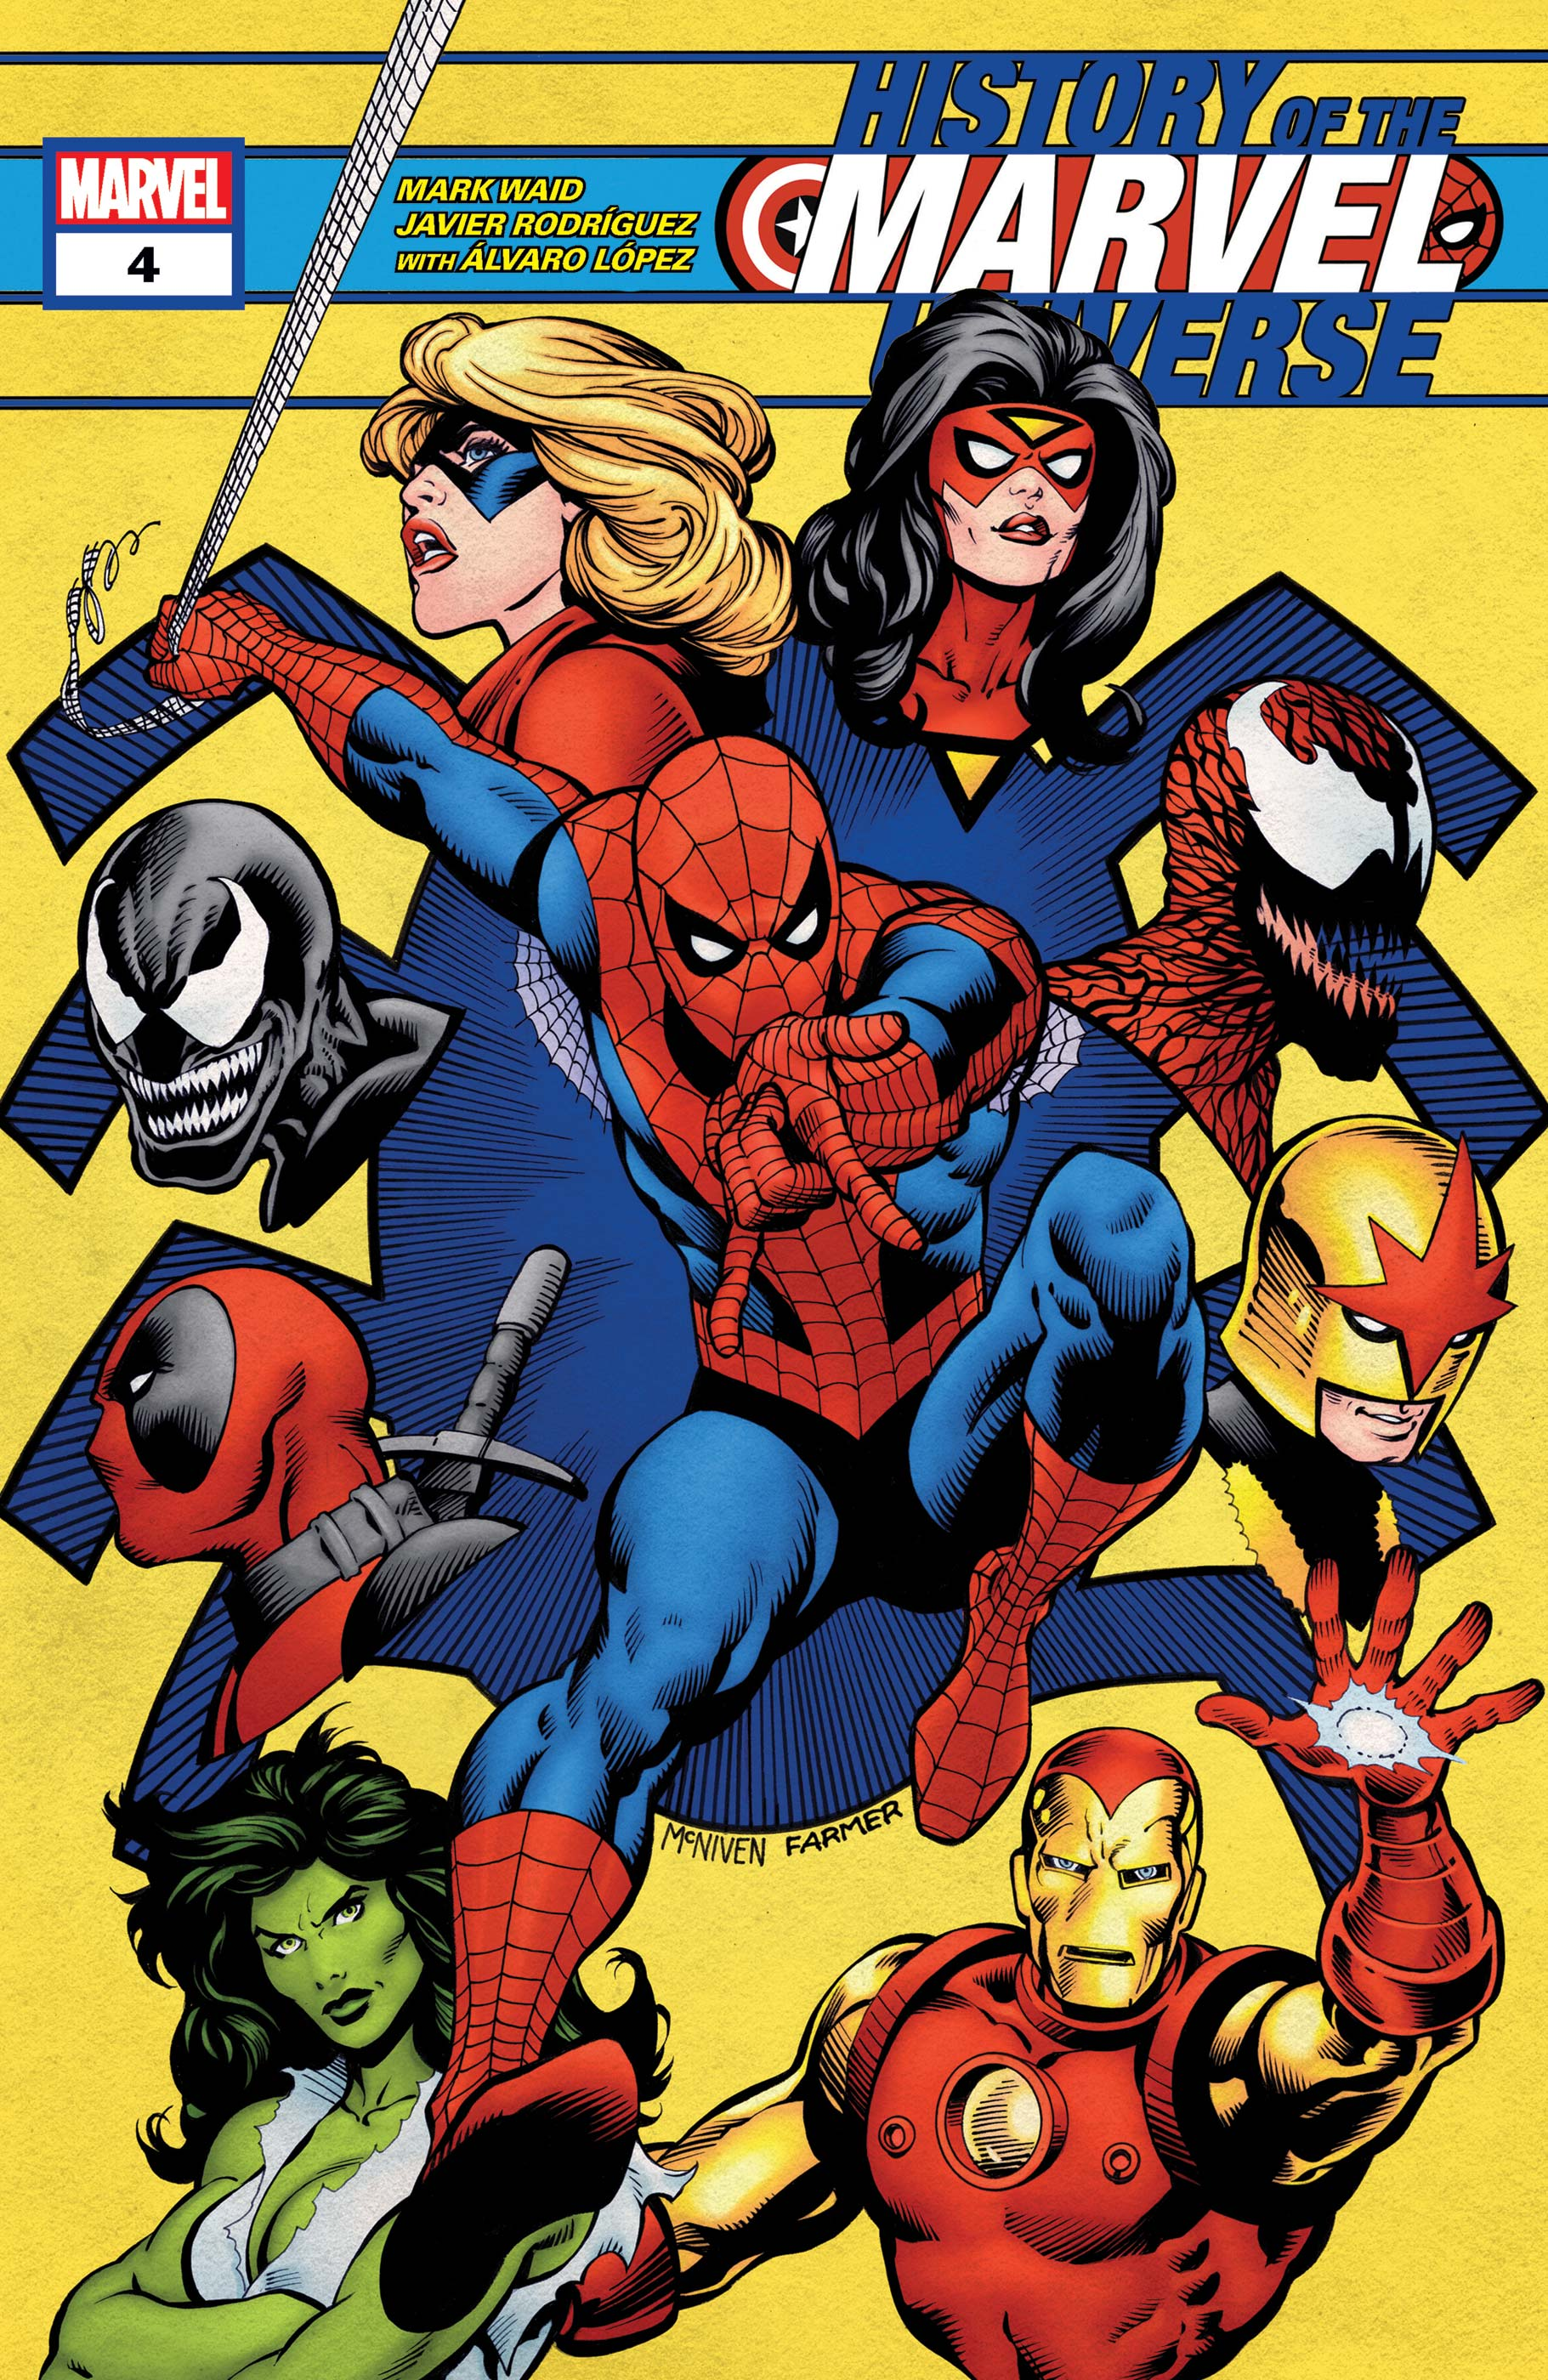 History of the Marvel Universe (2019) #4